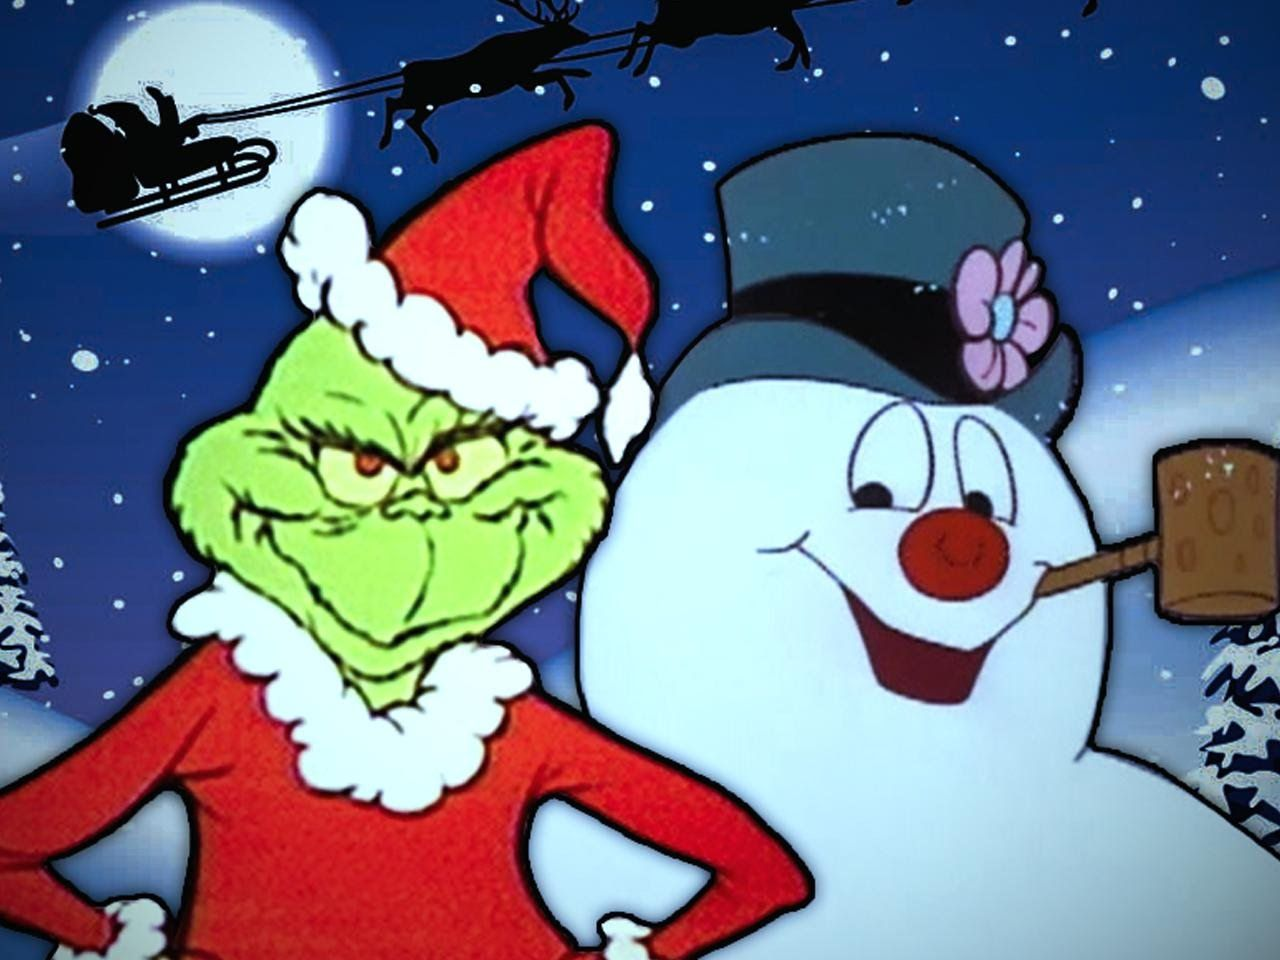 The Grinch Vs Frosty The Snowman Epic Rap Battles Of Cartoons Christmas Frosty The Snowmen Grinch Grinch Decorations